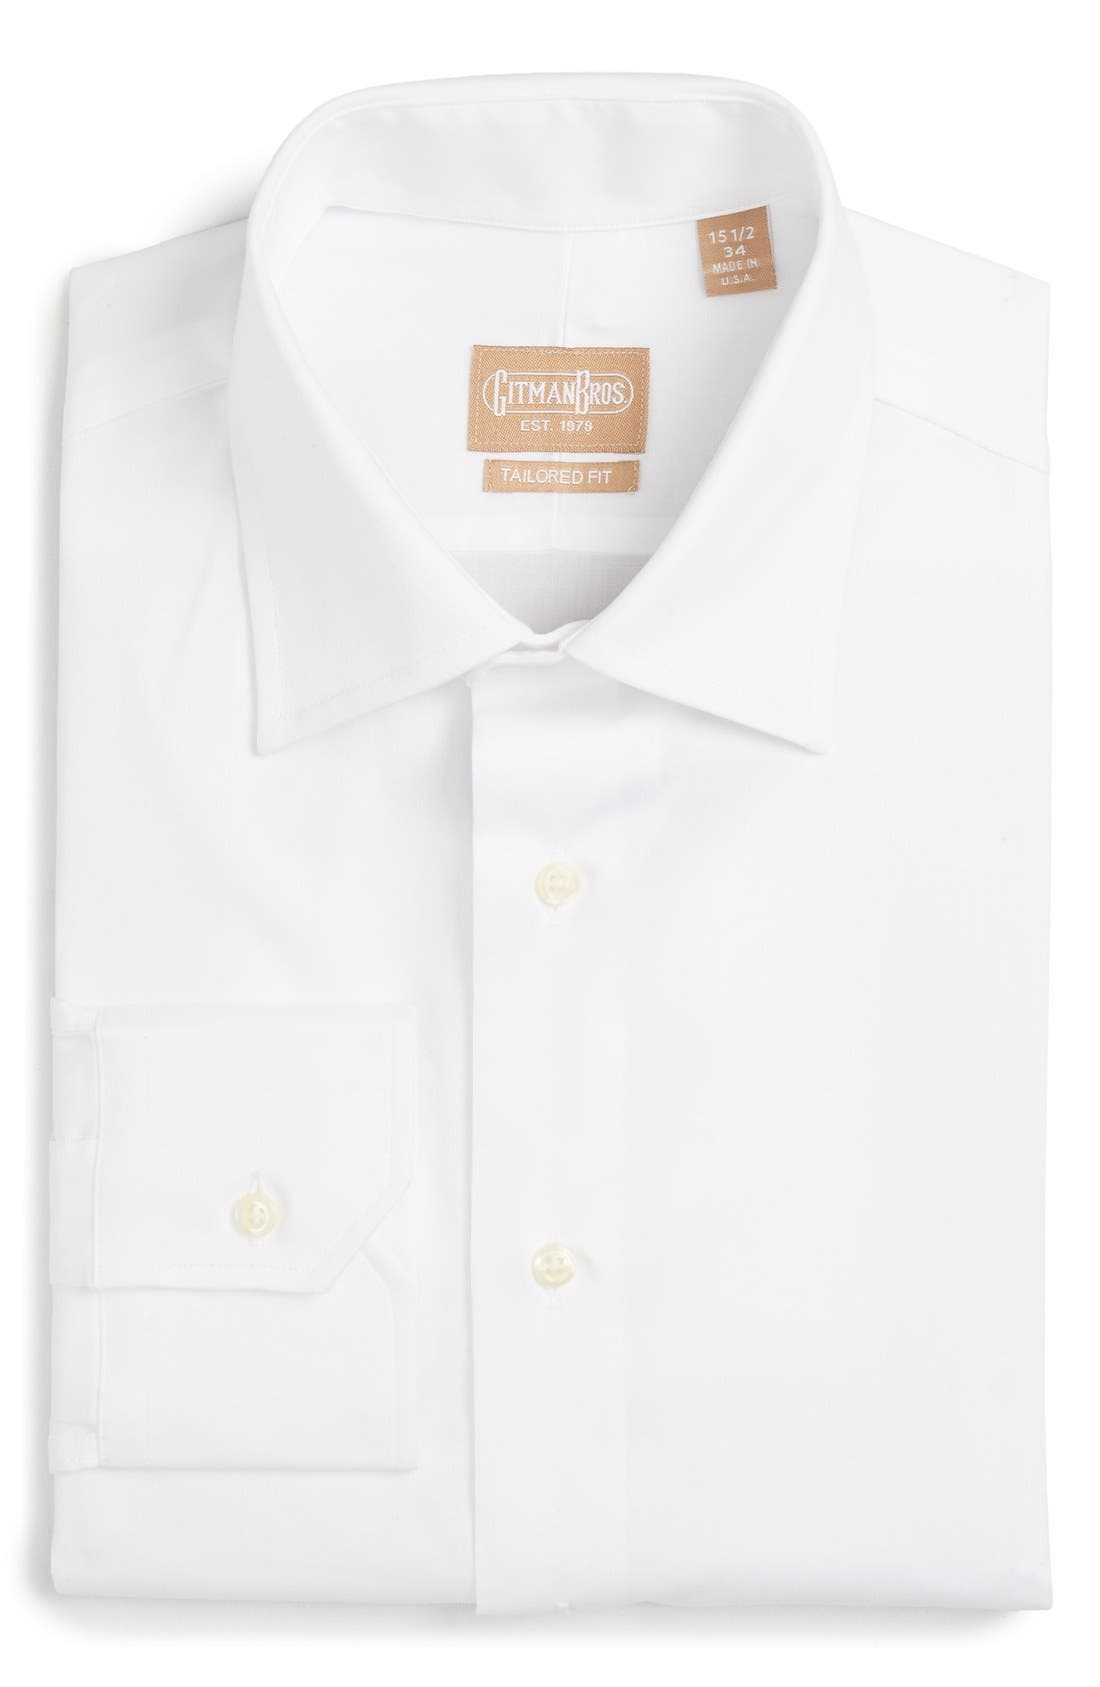 Tailored Fit Solid Dress Shirt,                             Main thumbnail 1, color,                             WHITE